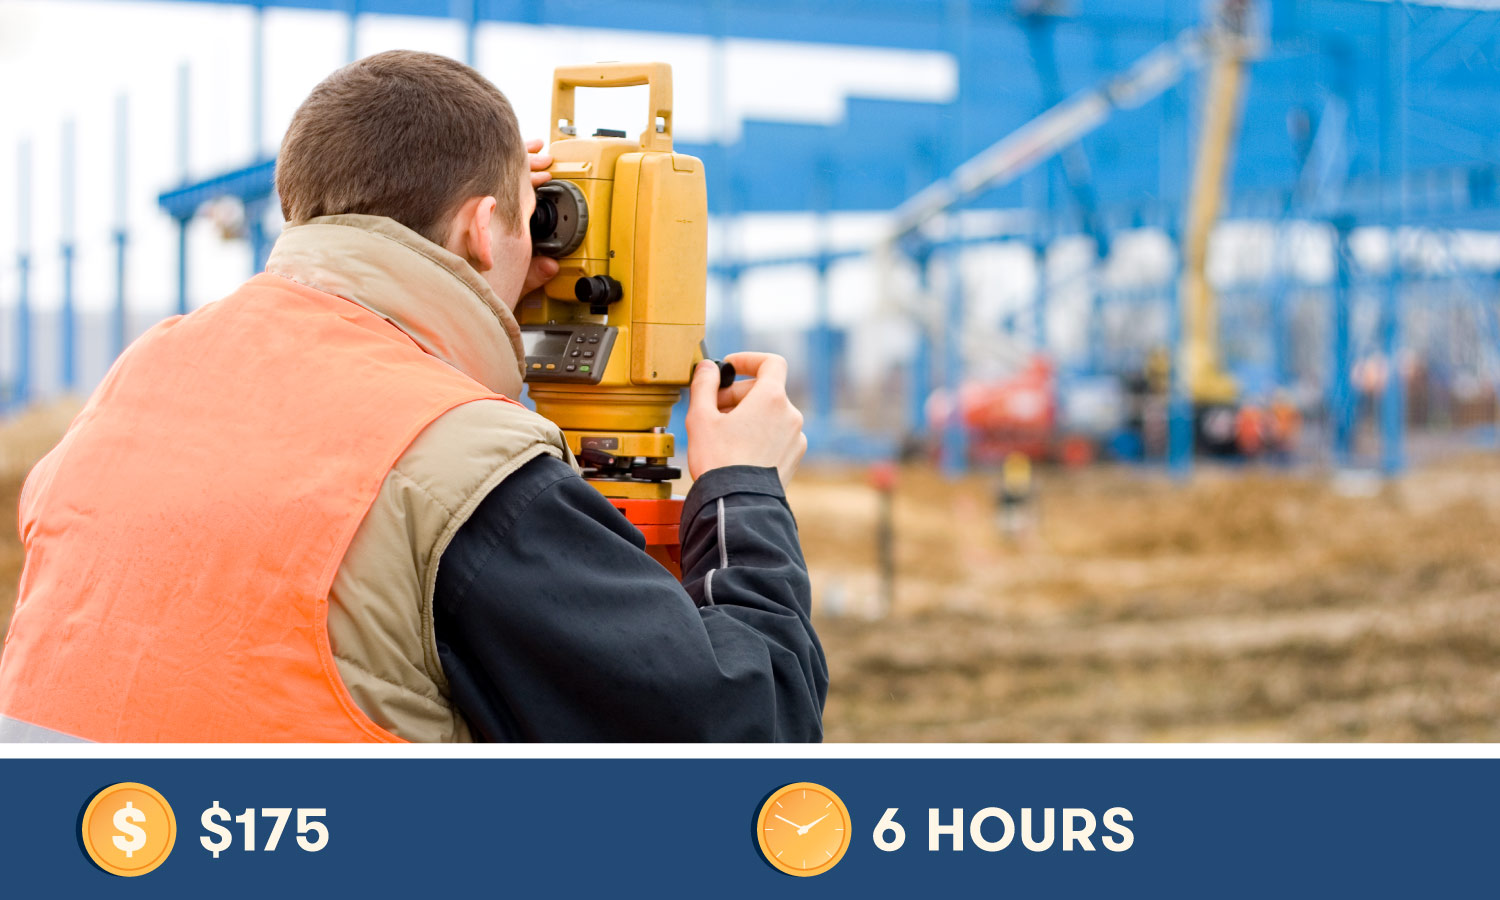 National Council of Examiners for Engineering and Surveying (NCEES) costs $175 and takes 6 hours